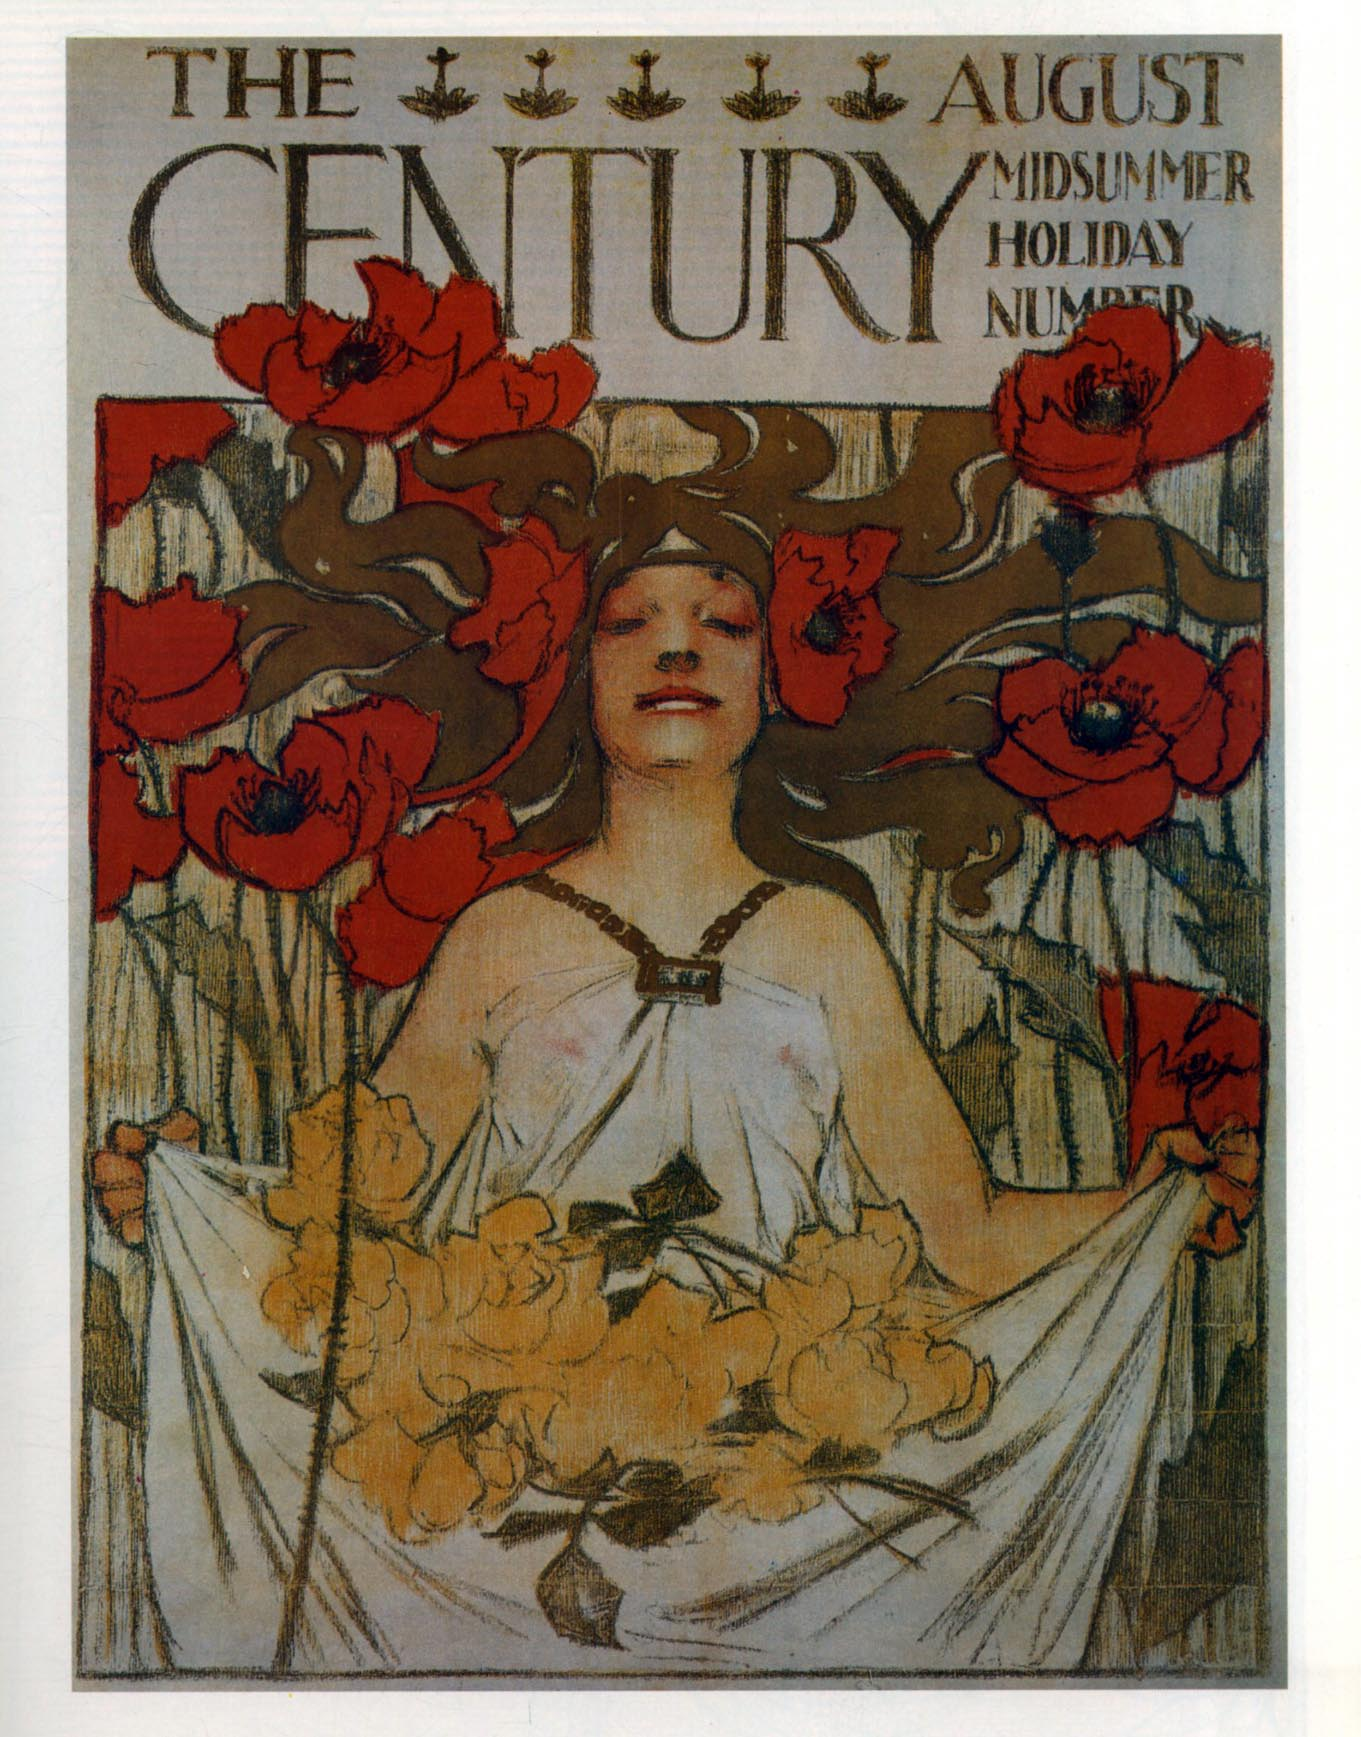 MAGAZINE COVERS - THE MULLEN COLLECTION